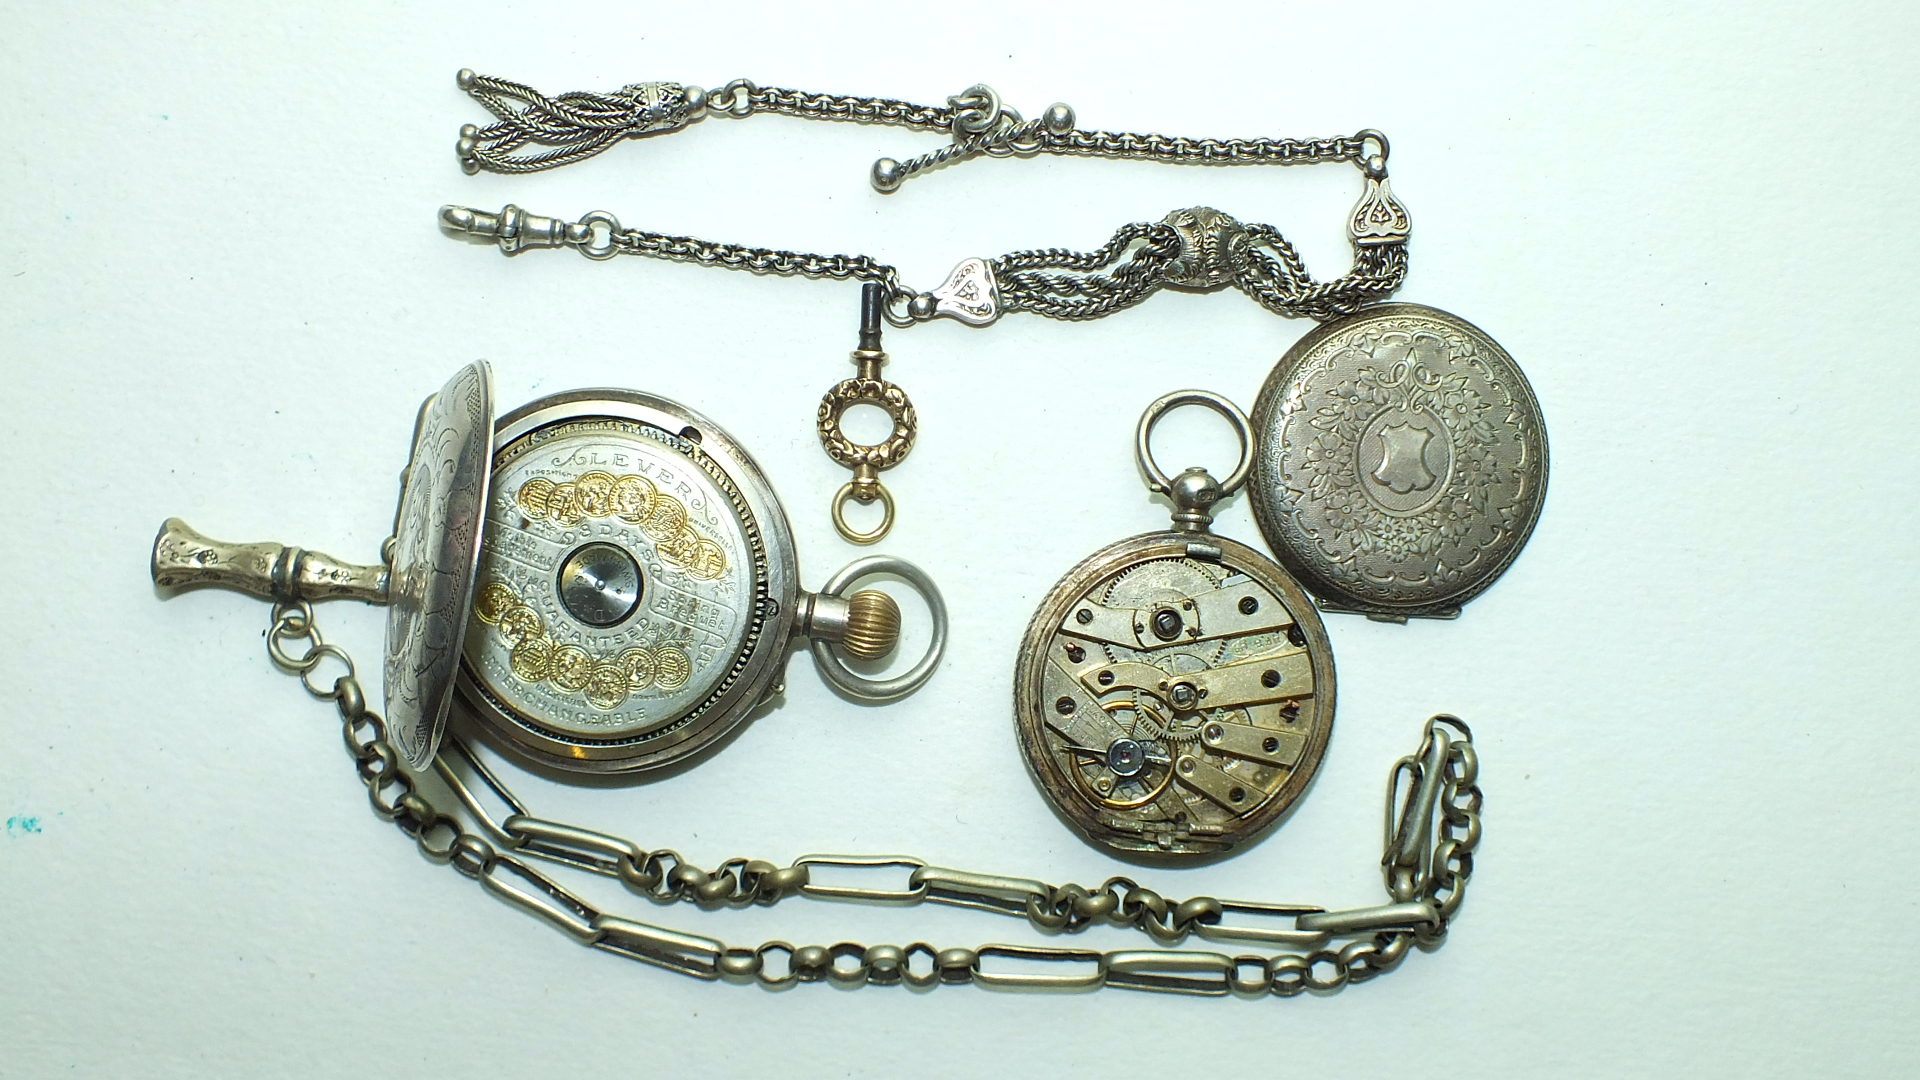 Lot 241 - A silver-cased open-face keyless pocket watch with visible 8-day escapement, (a/f) and a silver-